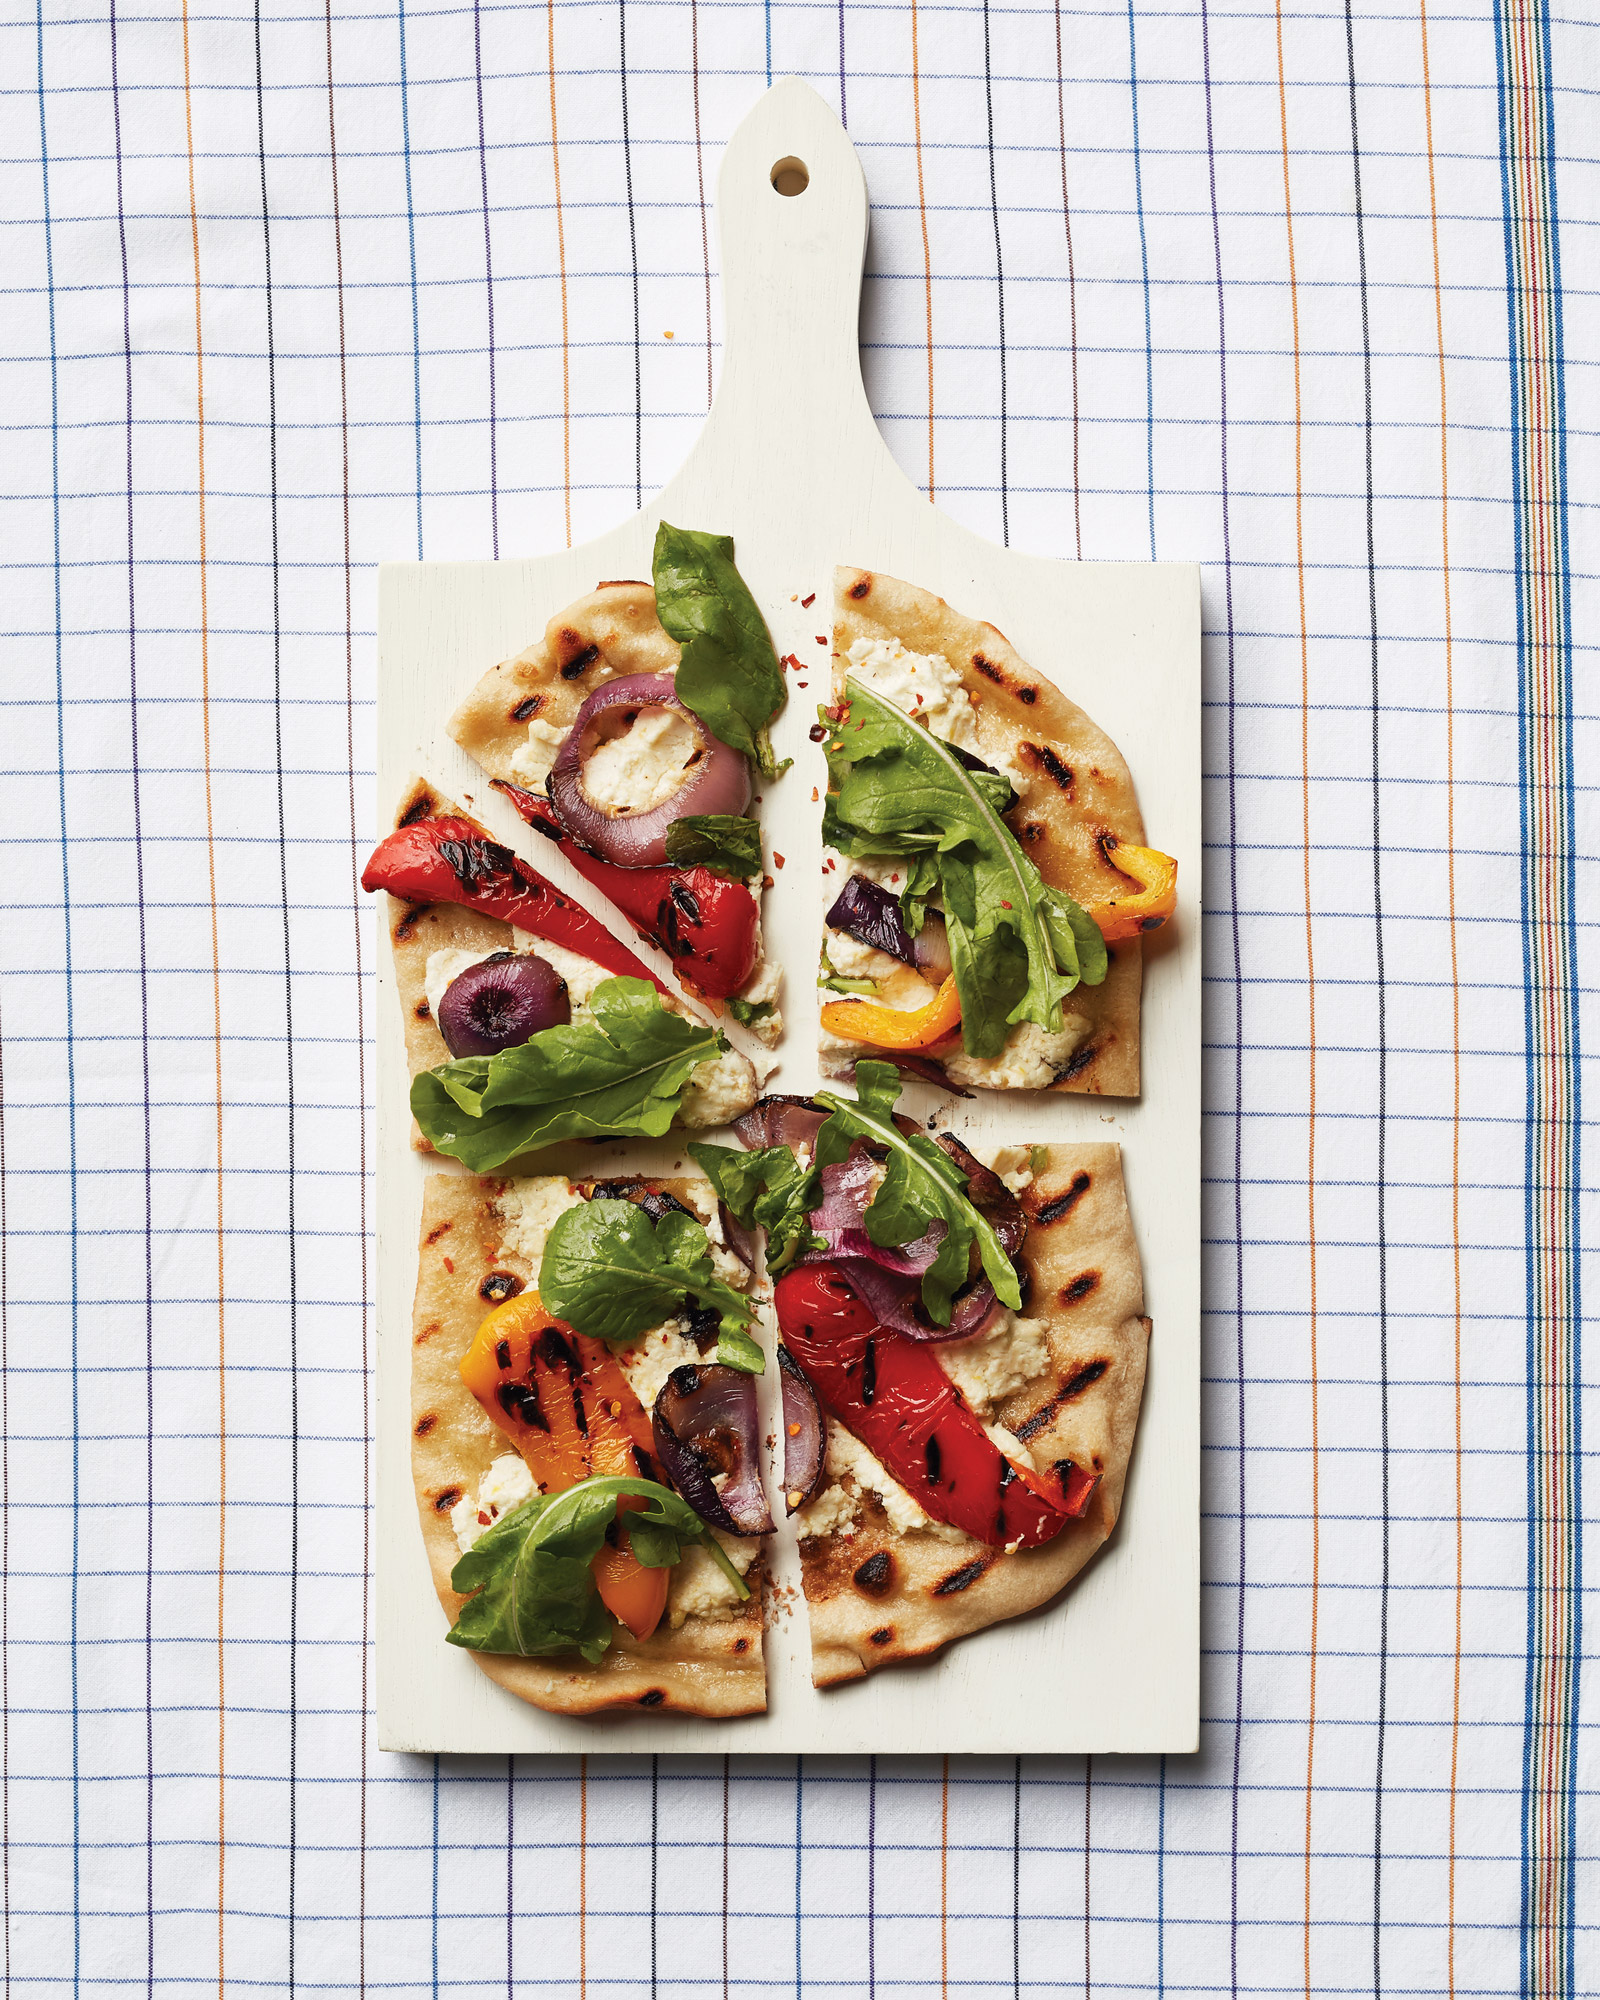 grilled-pepper-and-onion-pizza-card-157-d112910.jpg